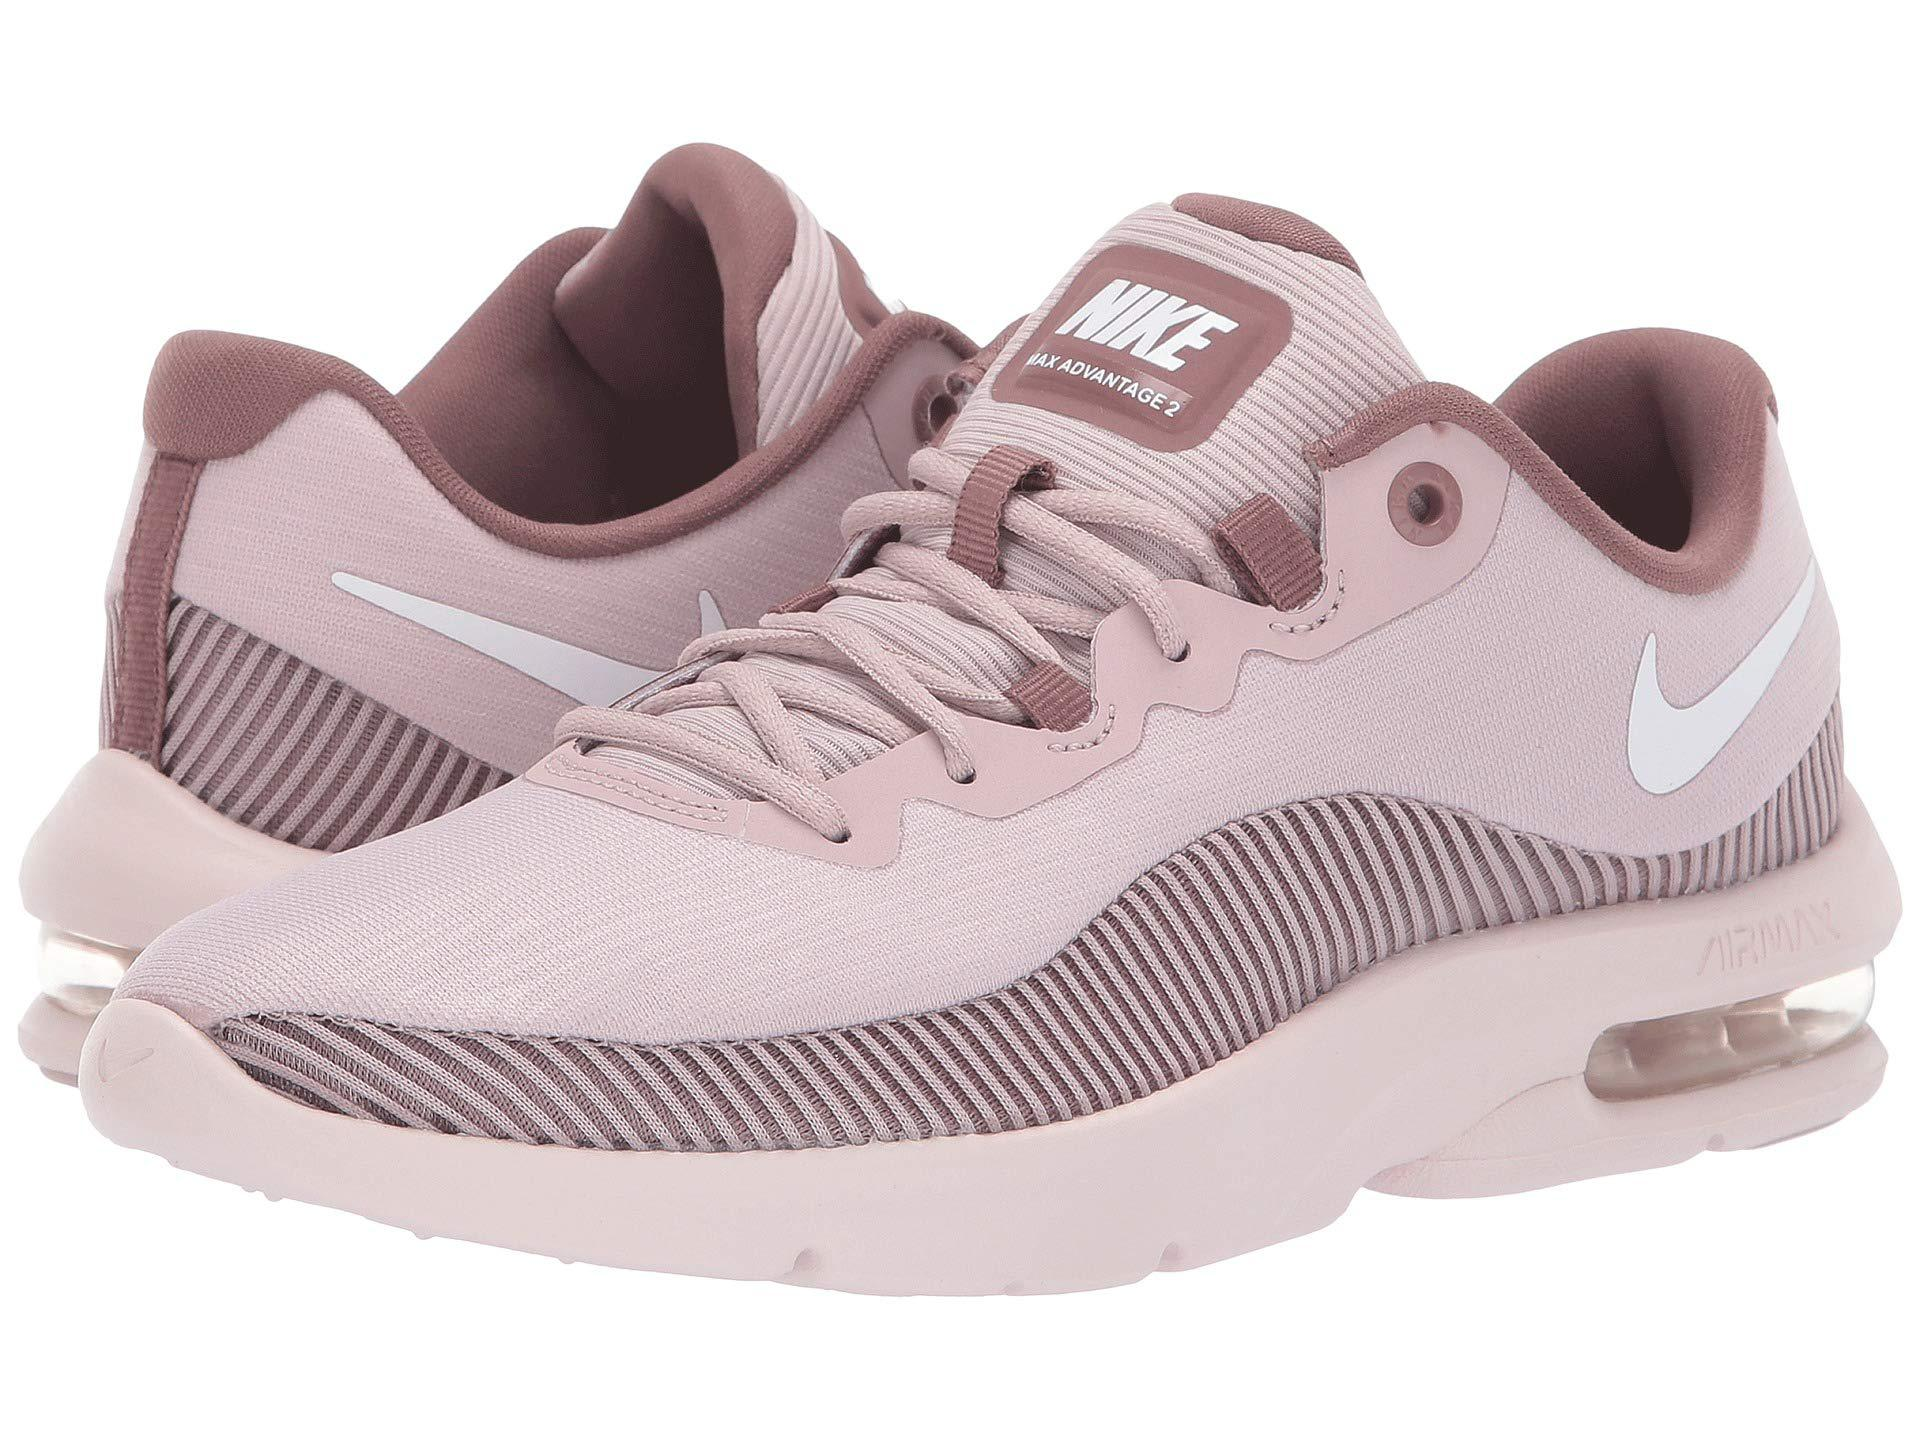 new style f0558 3c6f8 Nike. Pink Air Max Advantage 2 (white black) Women s Running Shoes